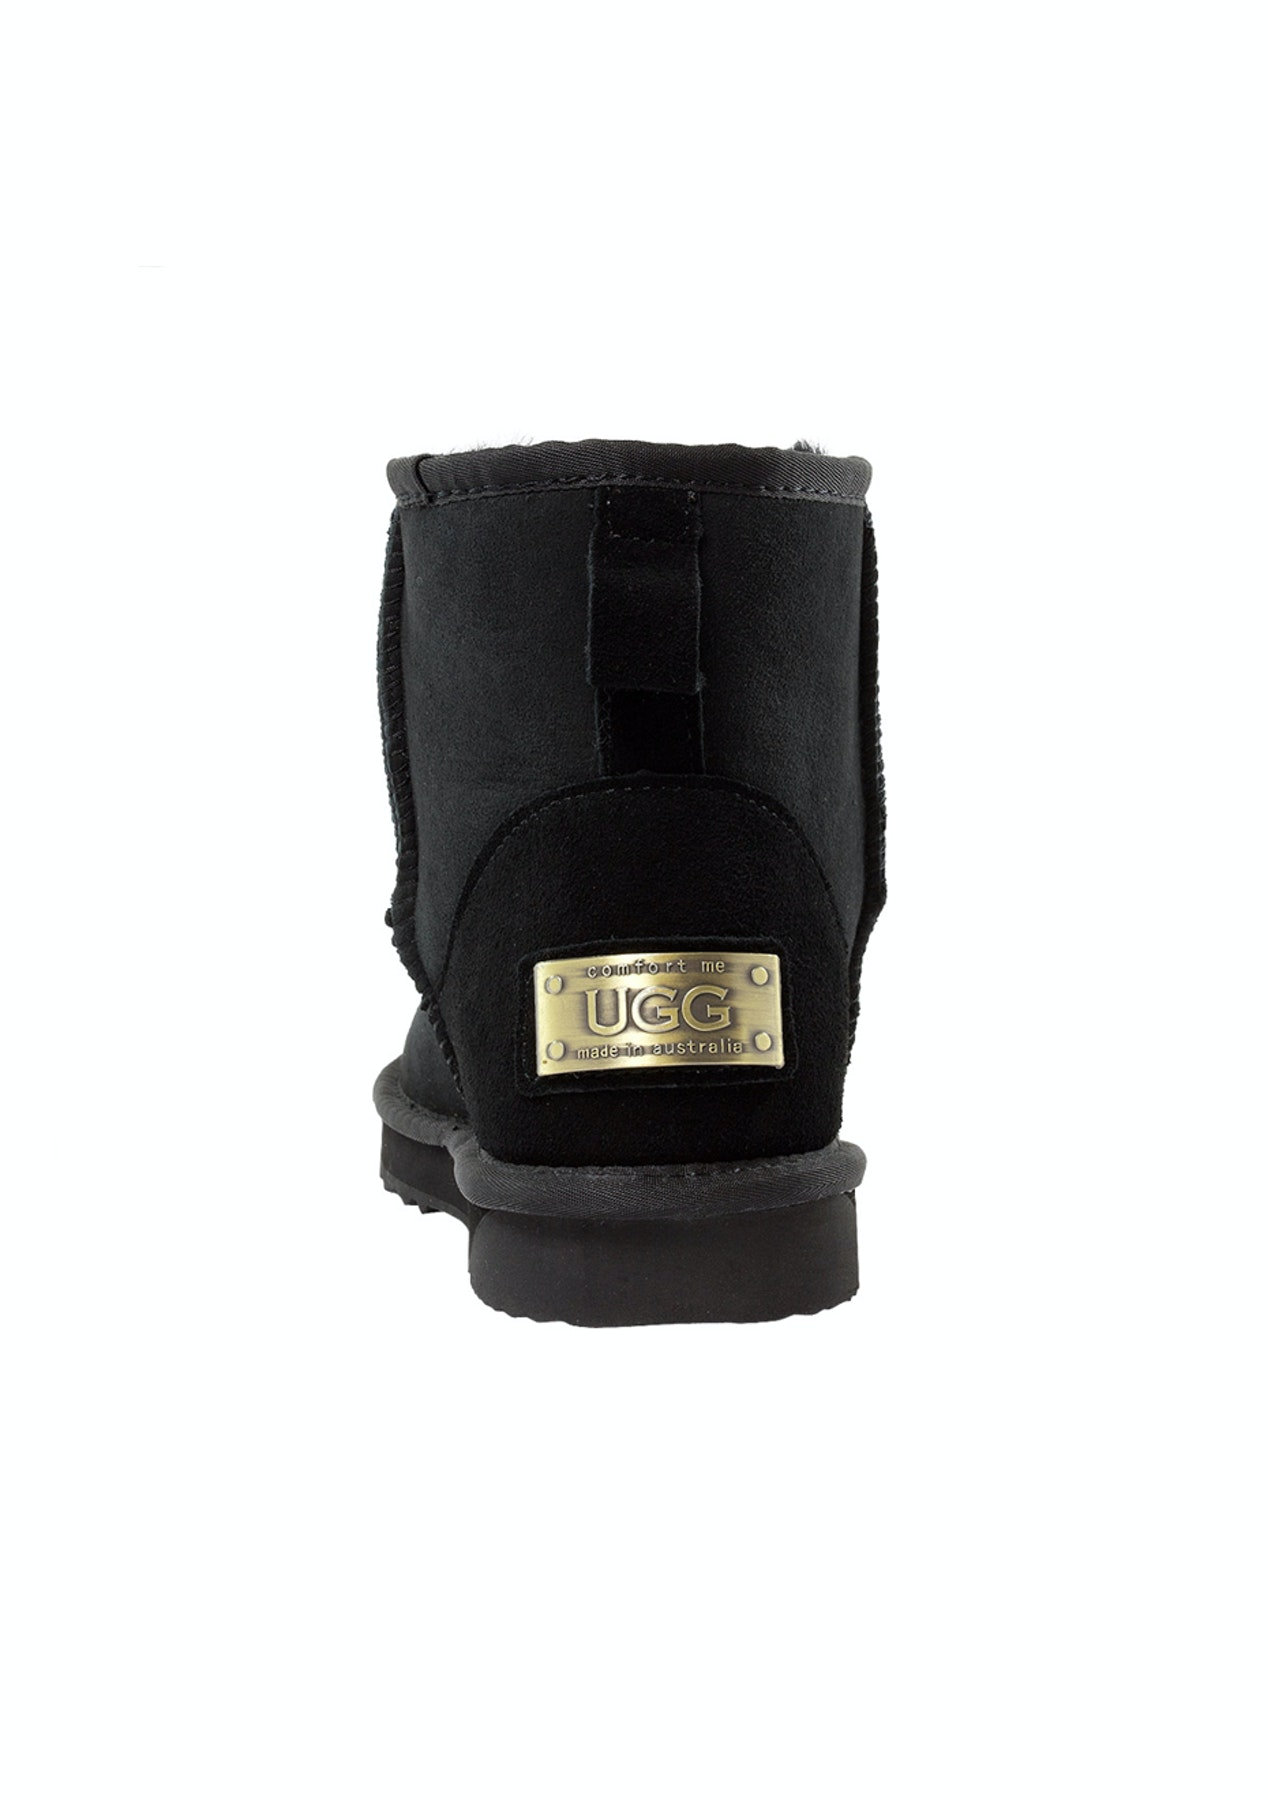 wholesale dealer 14033 ed1ad Ultra Short Classic Black- Ugg Boots Sheepskin Made In Australia - Comfort  Me - Unisex Size 4-13